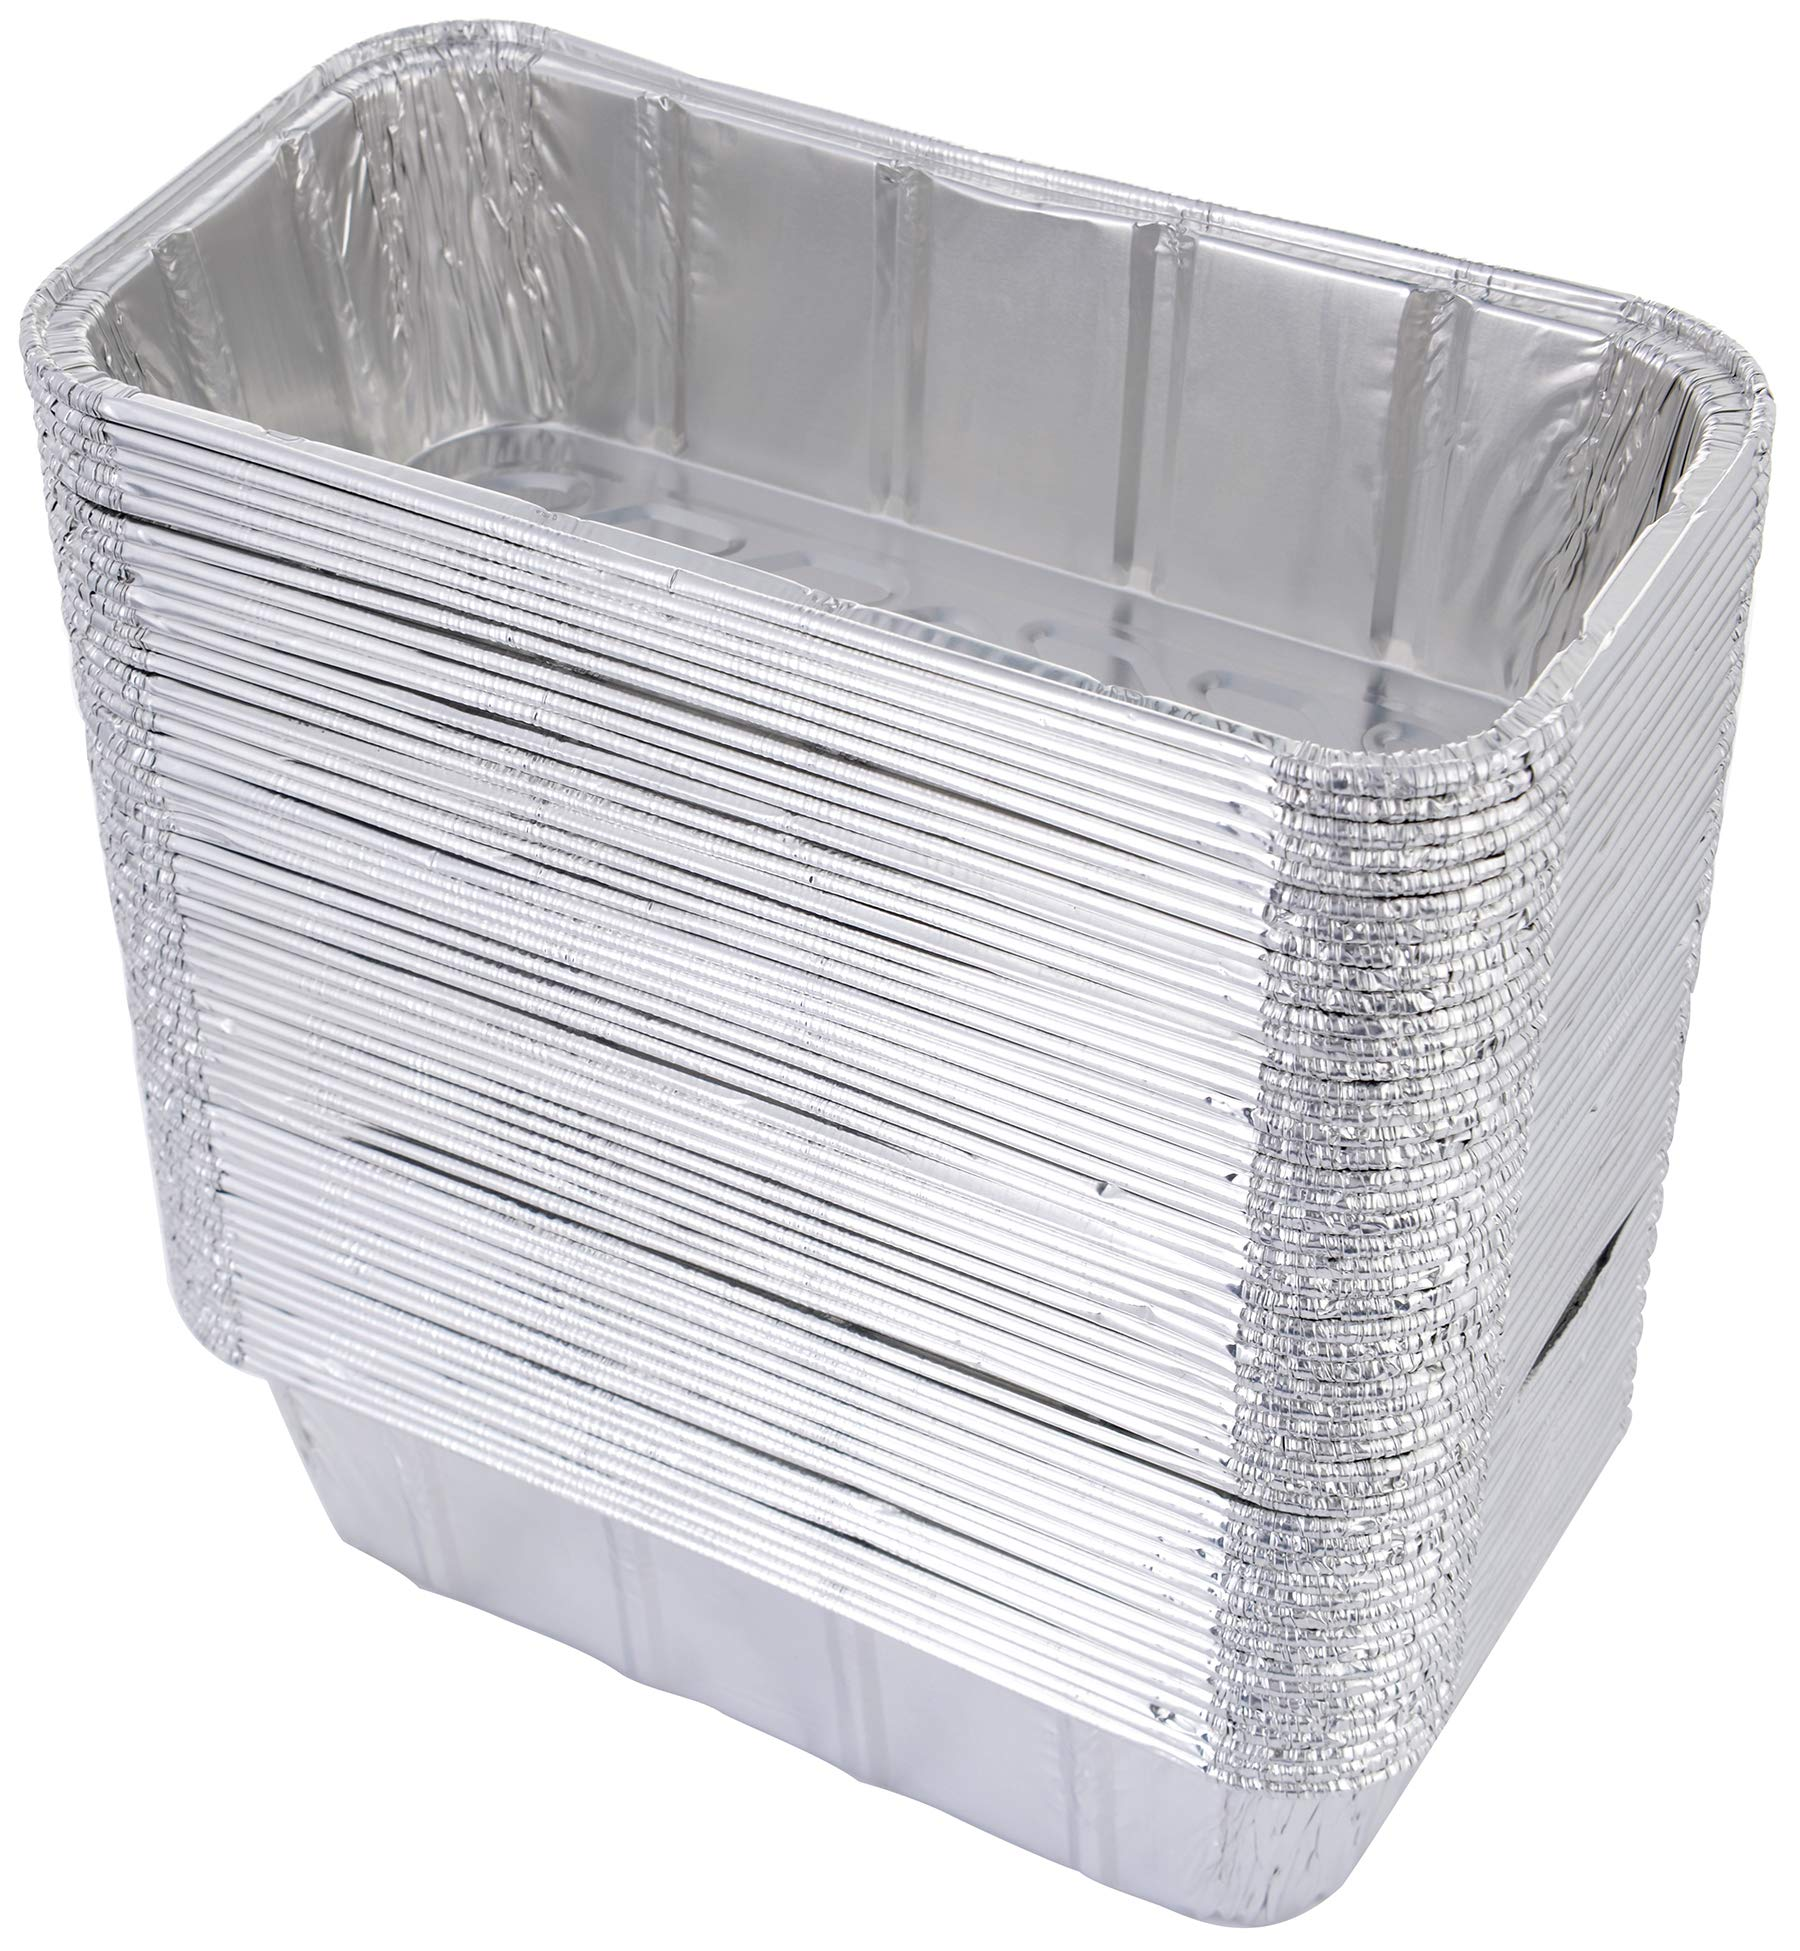 DOBI (50 Pack) Loaf Pans - Disposable Aluminum Foil 2Lb Bread Tins, Standard Size - 8.5'' X 4.5'' X 2.5''